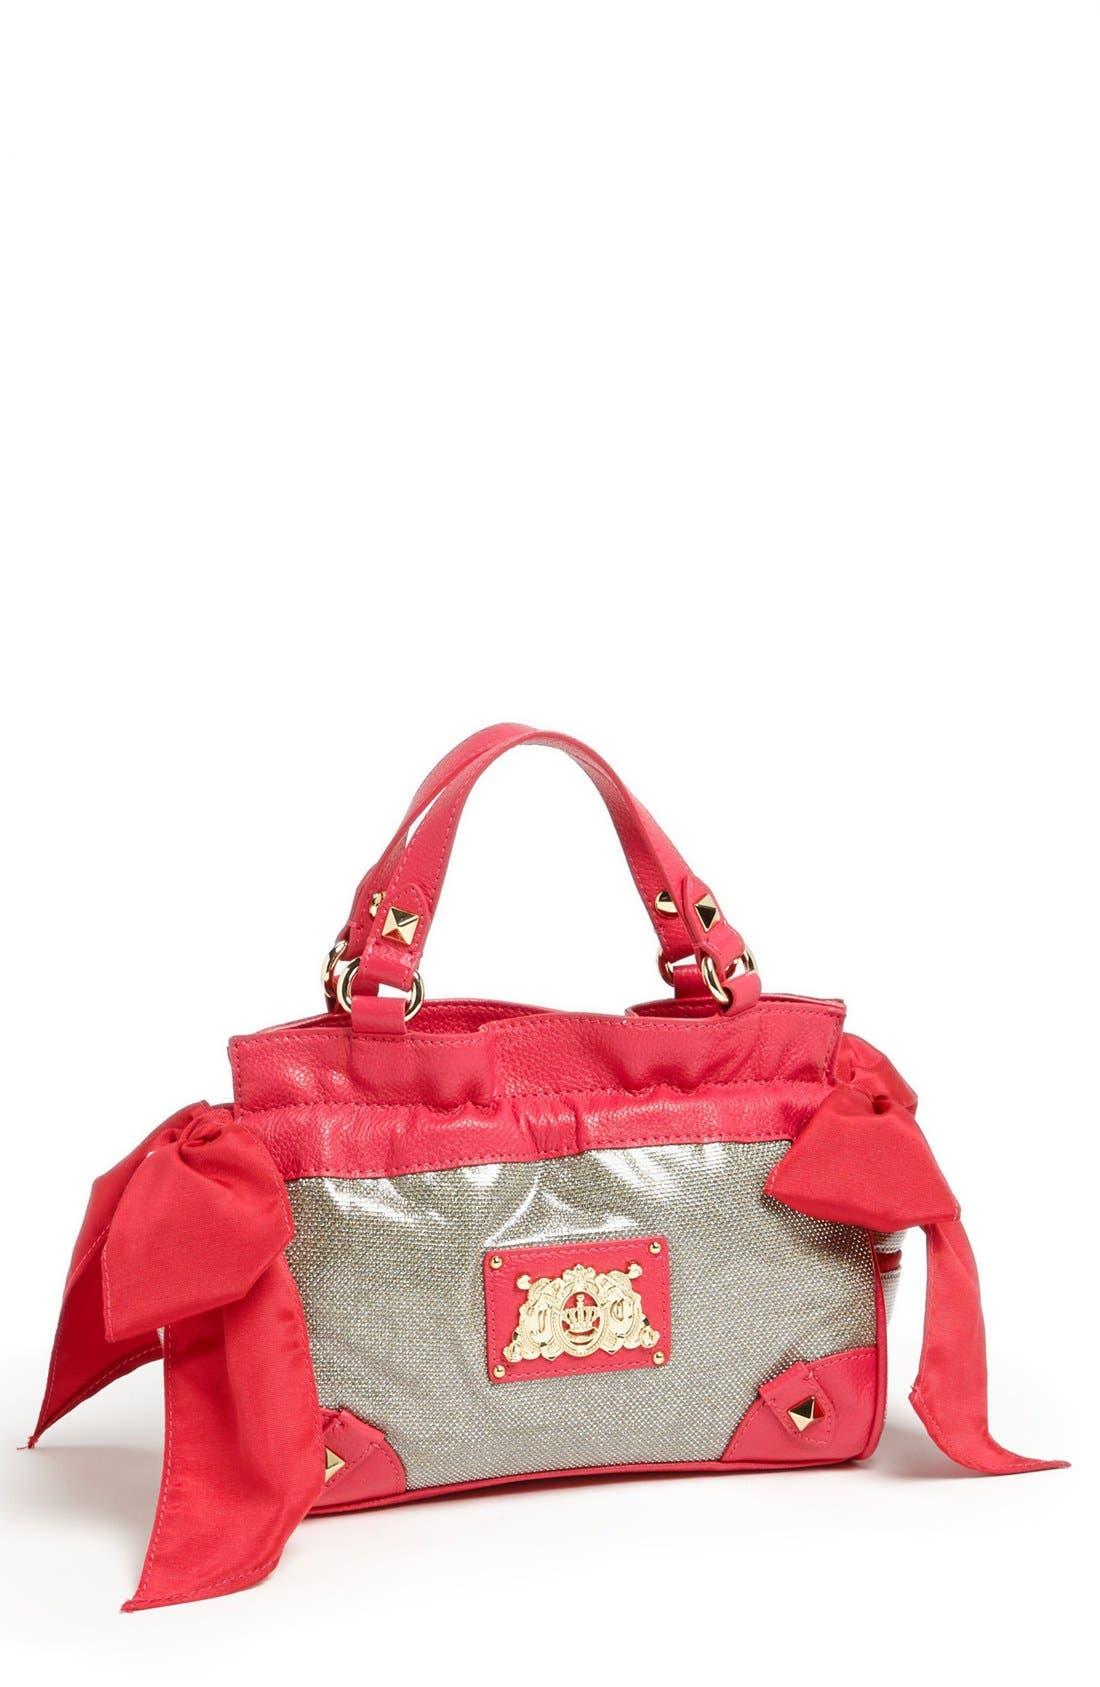 Alternate Image 1 Selected - Juicy Couture 'Bright Diamond - Mini Daydreamer' Bag (Girls)